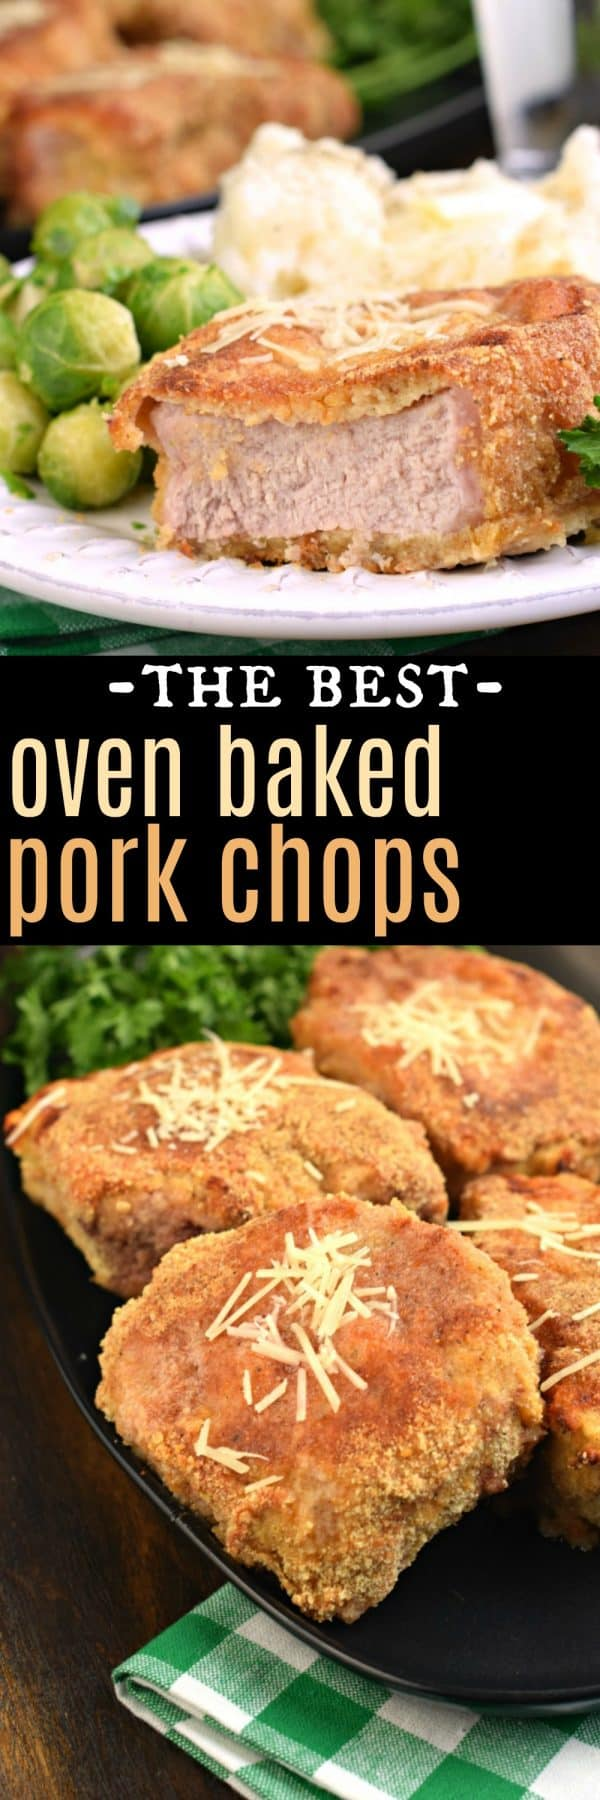 The Best oven baked PORK CHOPS. Parmesan crusted and crunch all around!